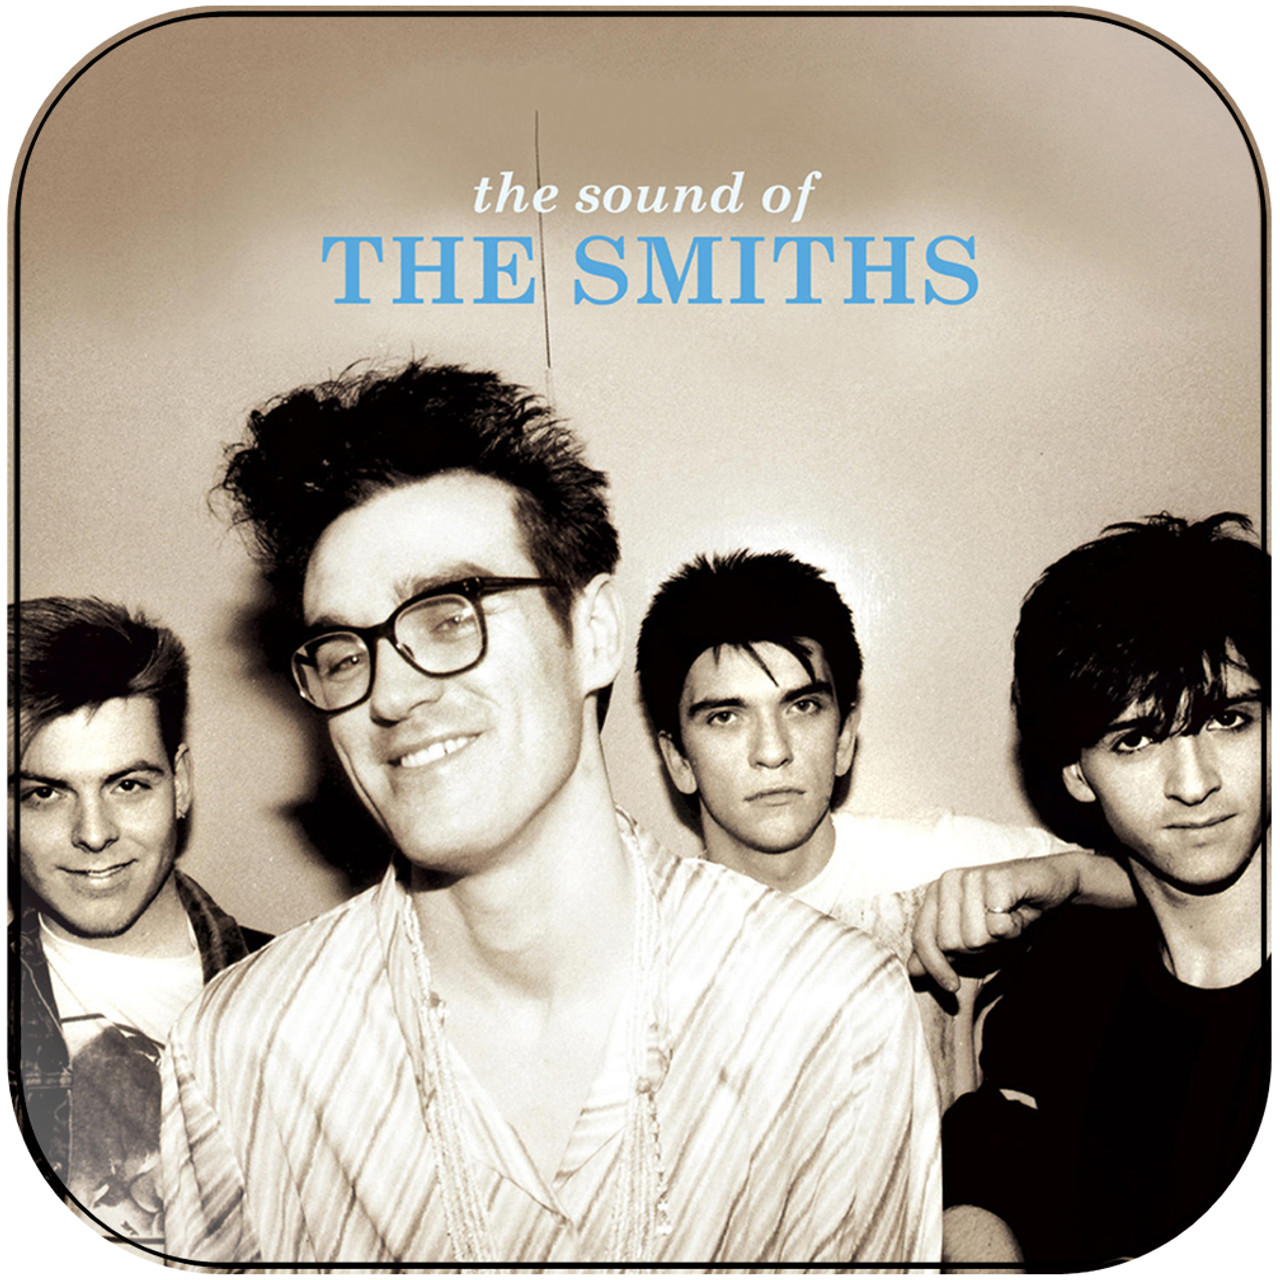 The Smiths - The Sound Of The Smiths-2 Album Cover Sticker